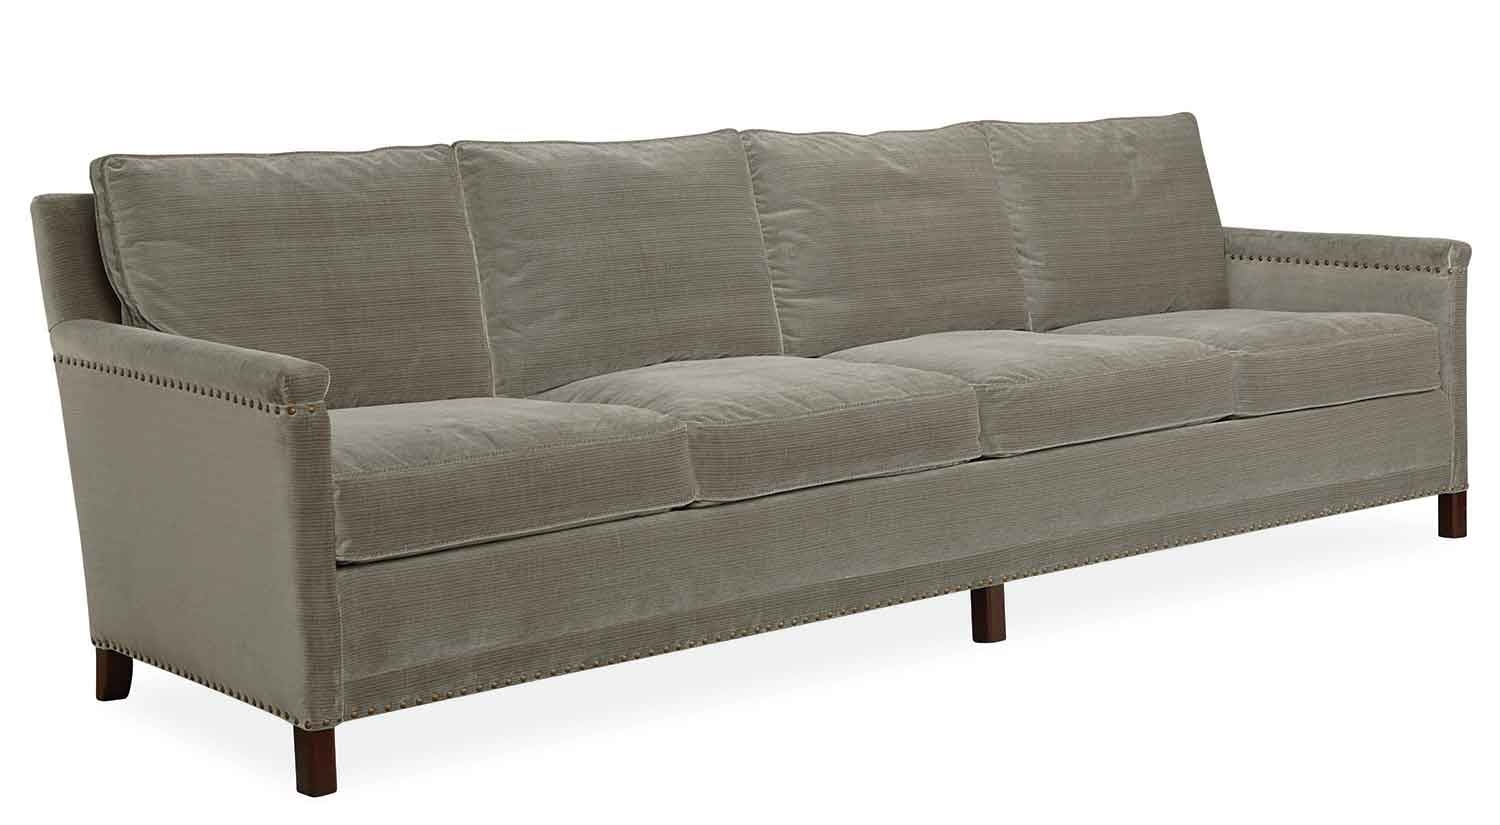 Circle Furniture Paige 4 Seat Sofa Sofas Acton Circle Furniture Intended For Four Seat Sofas (Image 5 of 15)